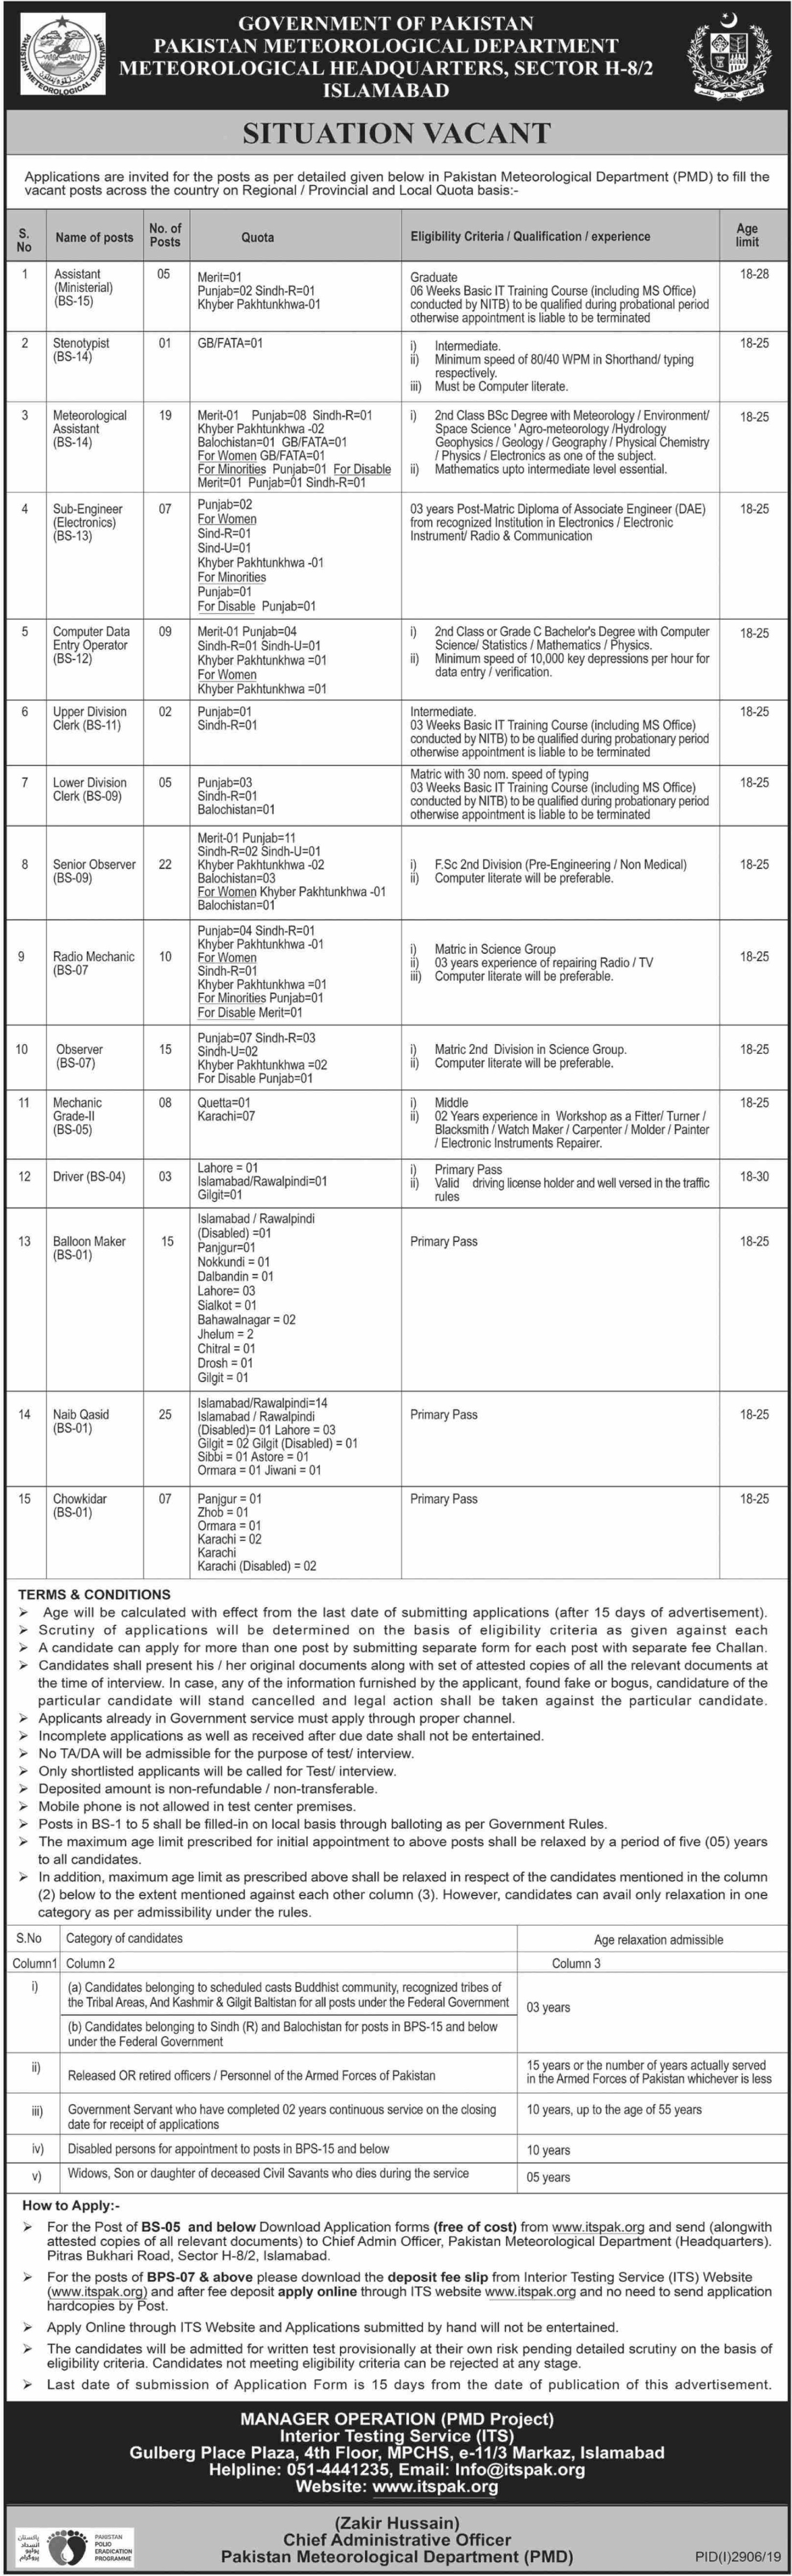 Pakistan Meteorological Department PMD Jobs 2019 Apply through ITS